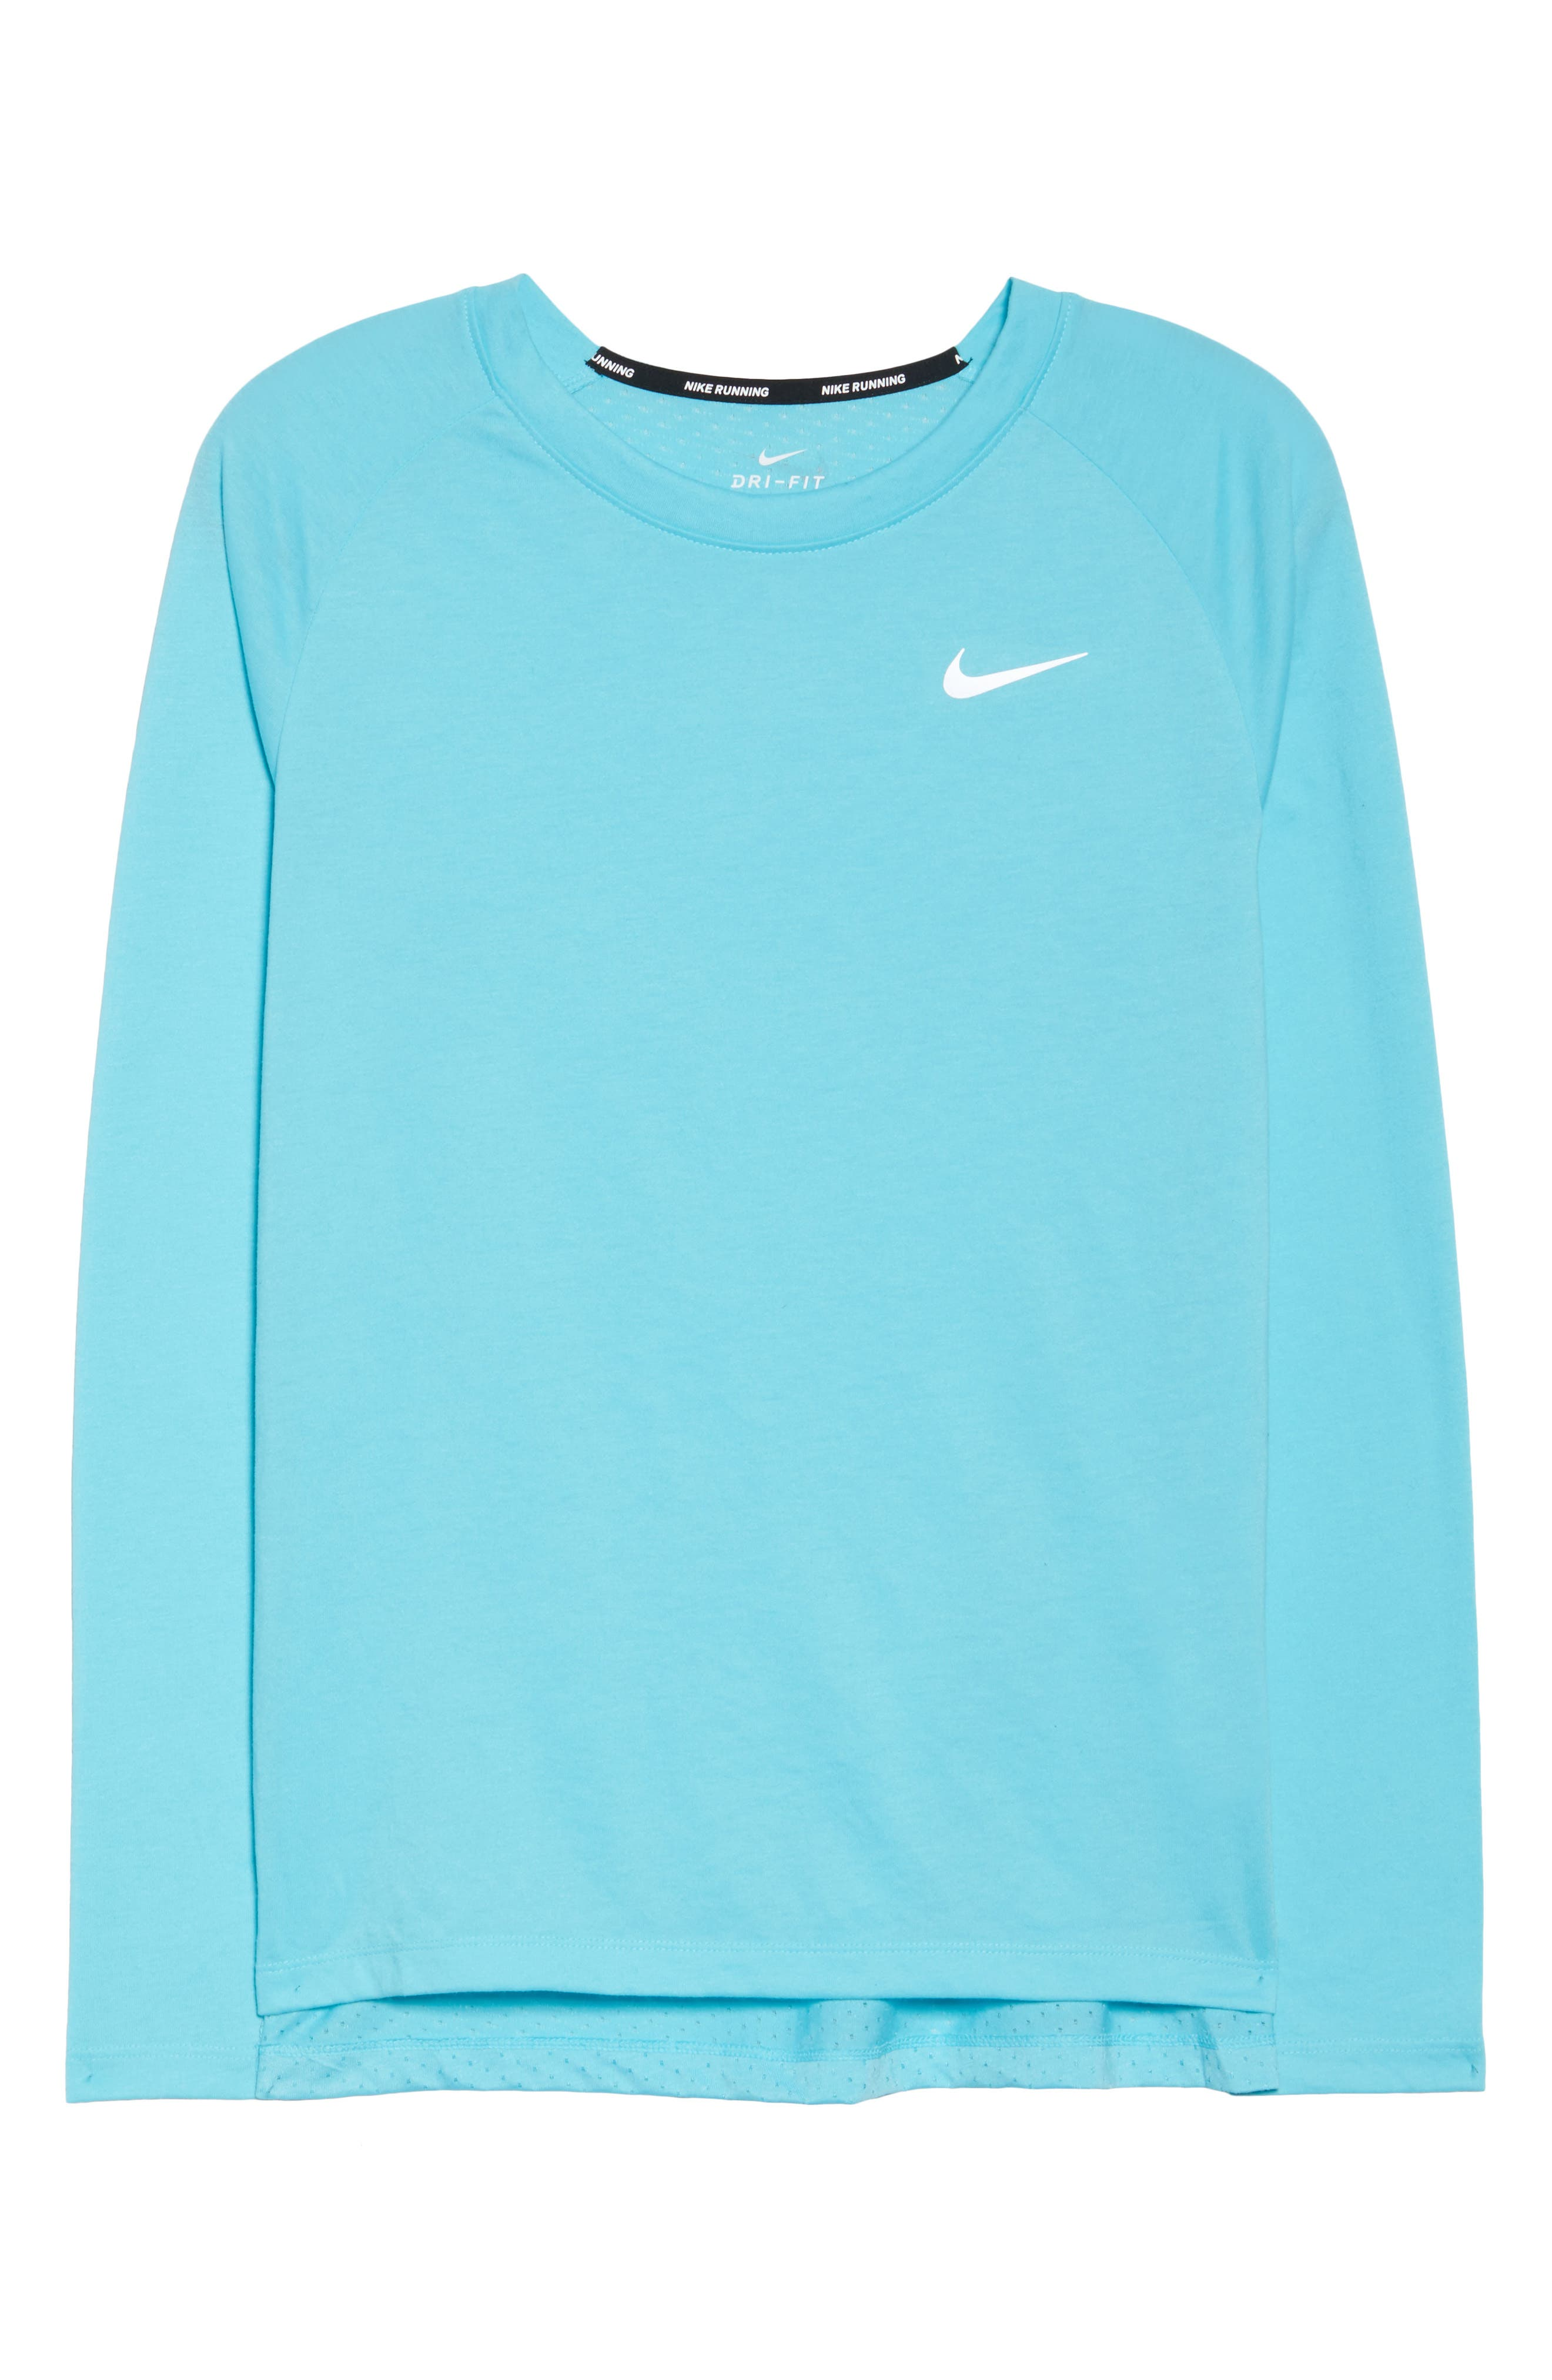 Breathe Tailwind Running Top,                             Alternate thumbnail 13, color,